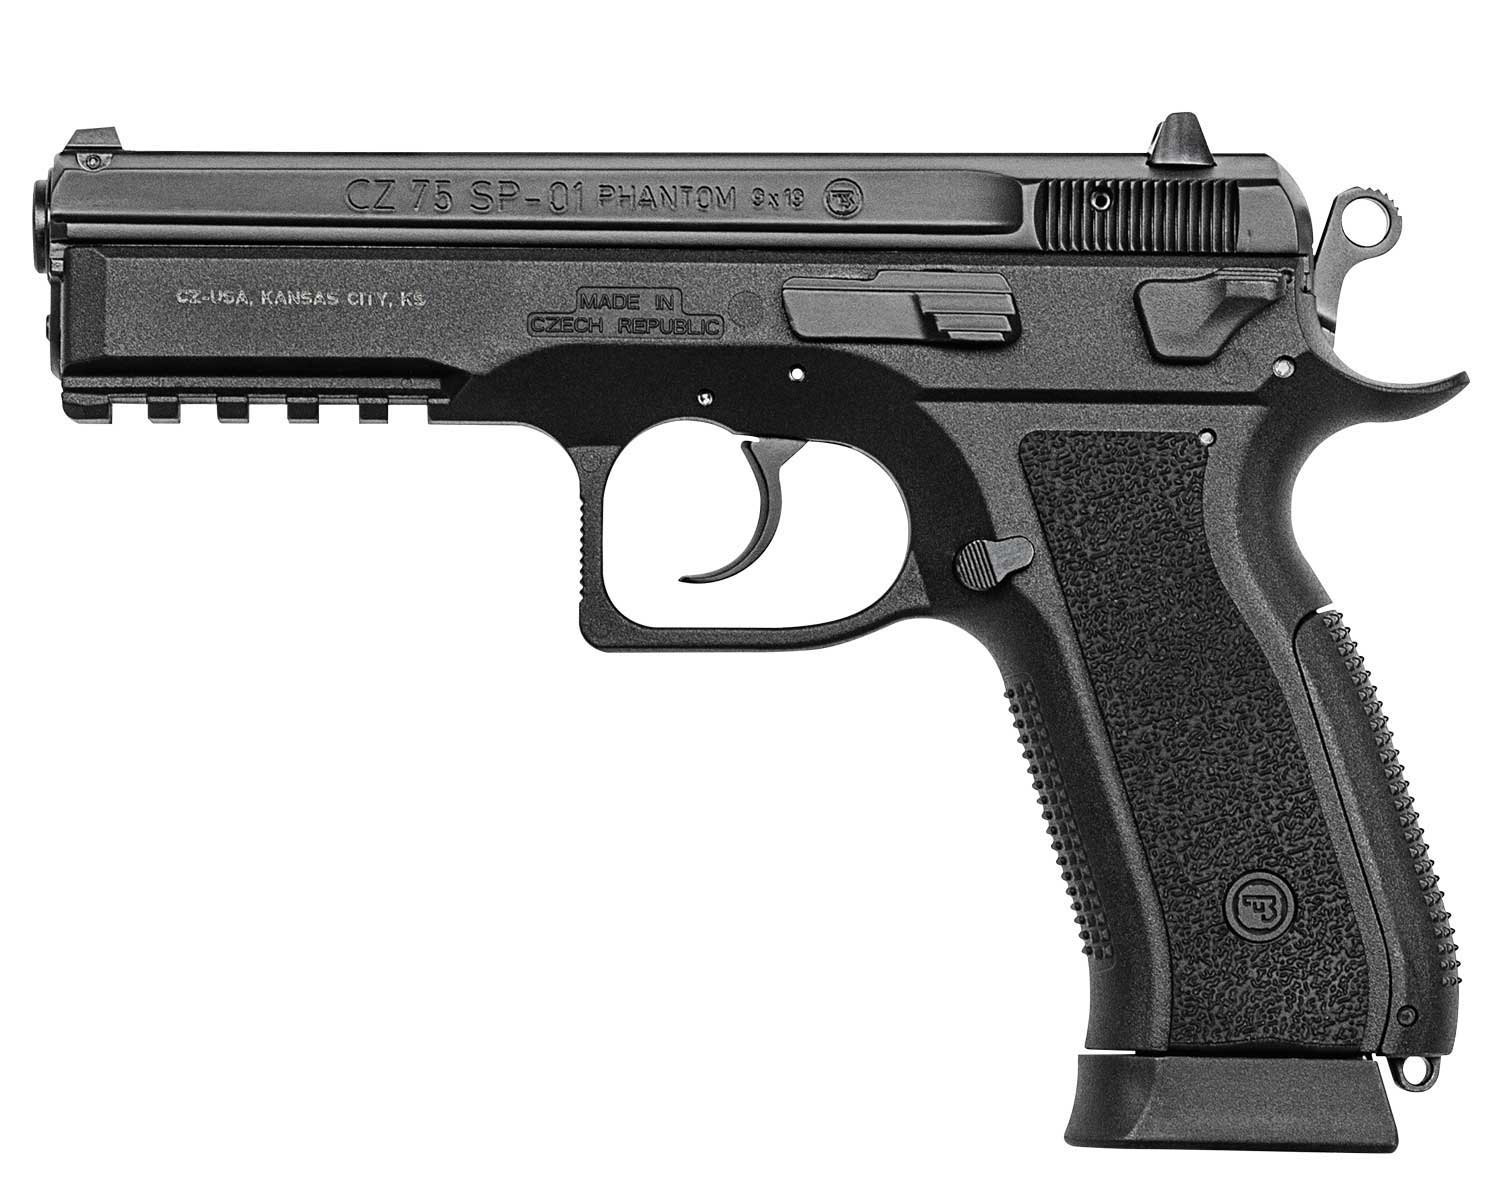 CZ-USA Sp-01 Phantom pistol